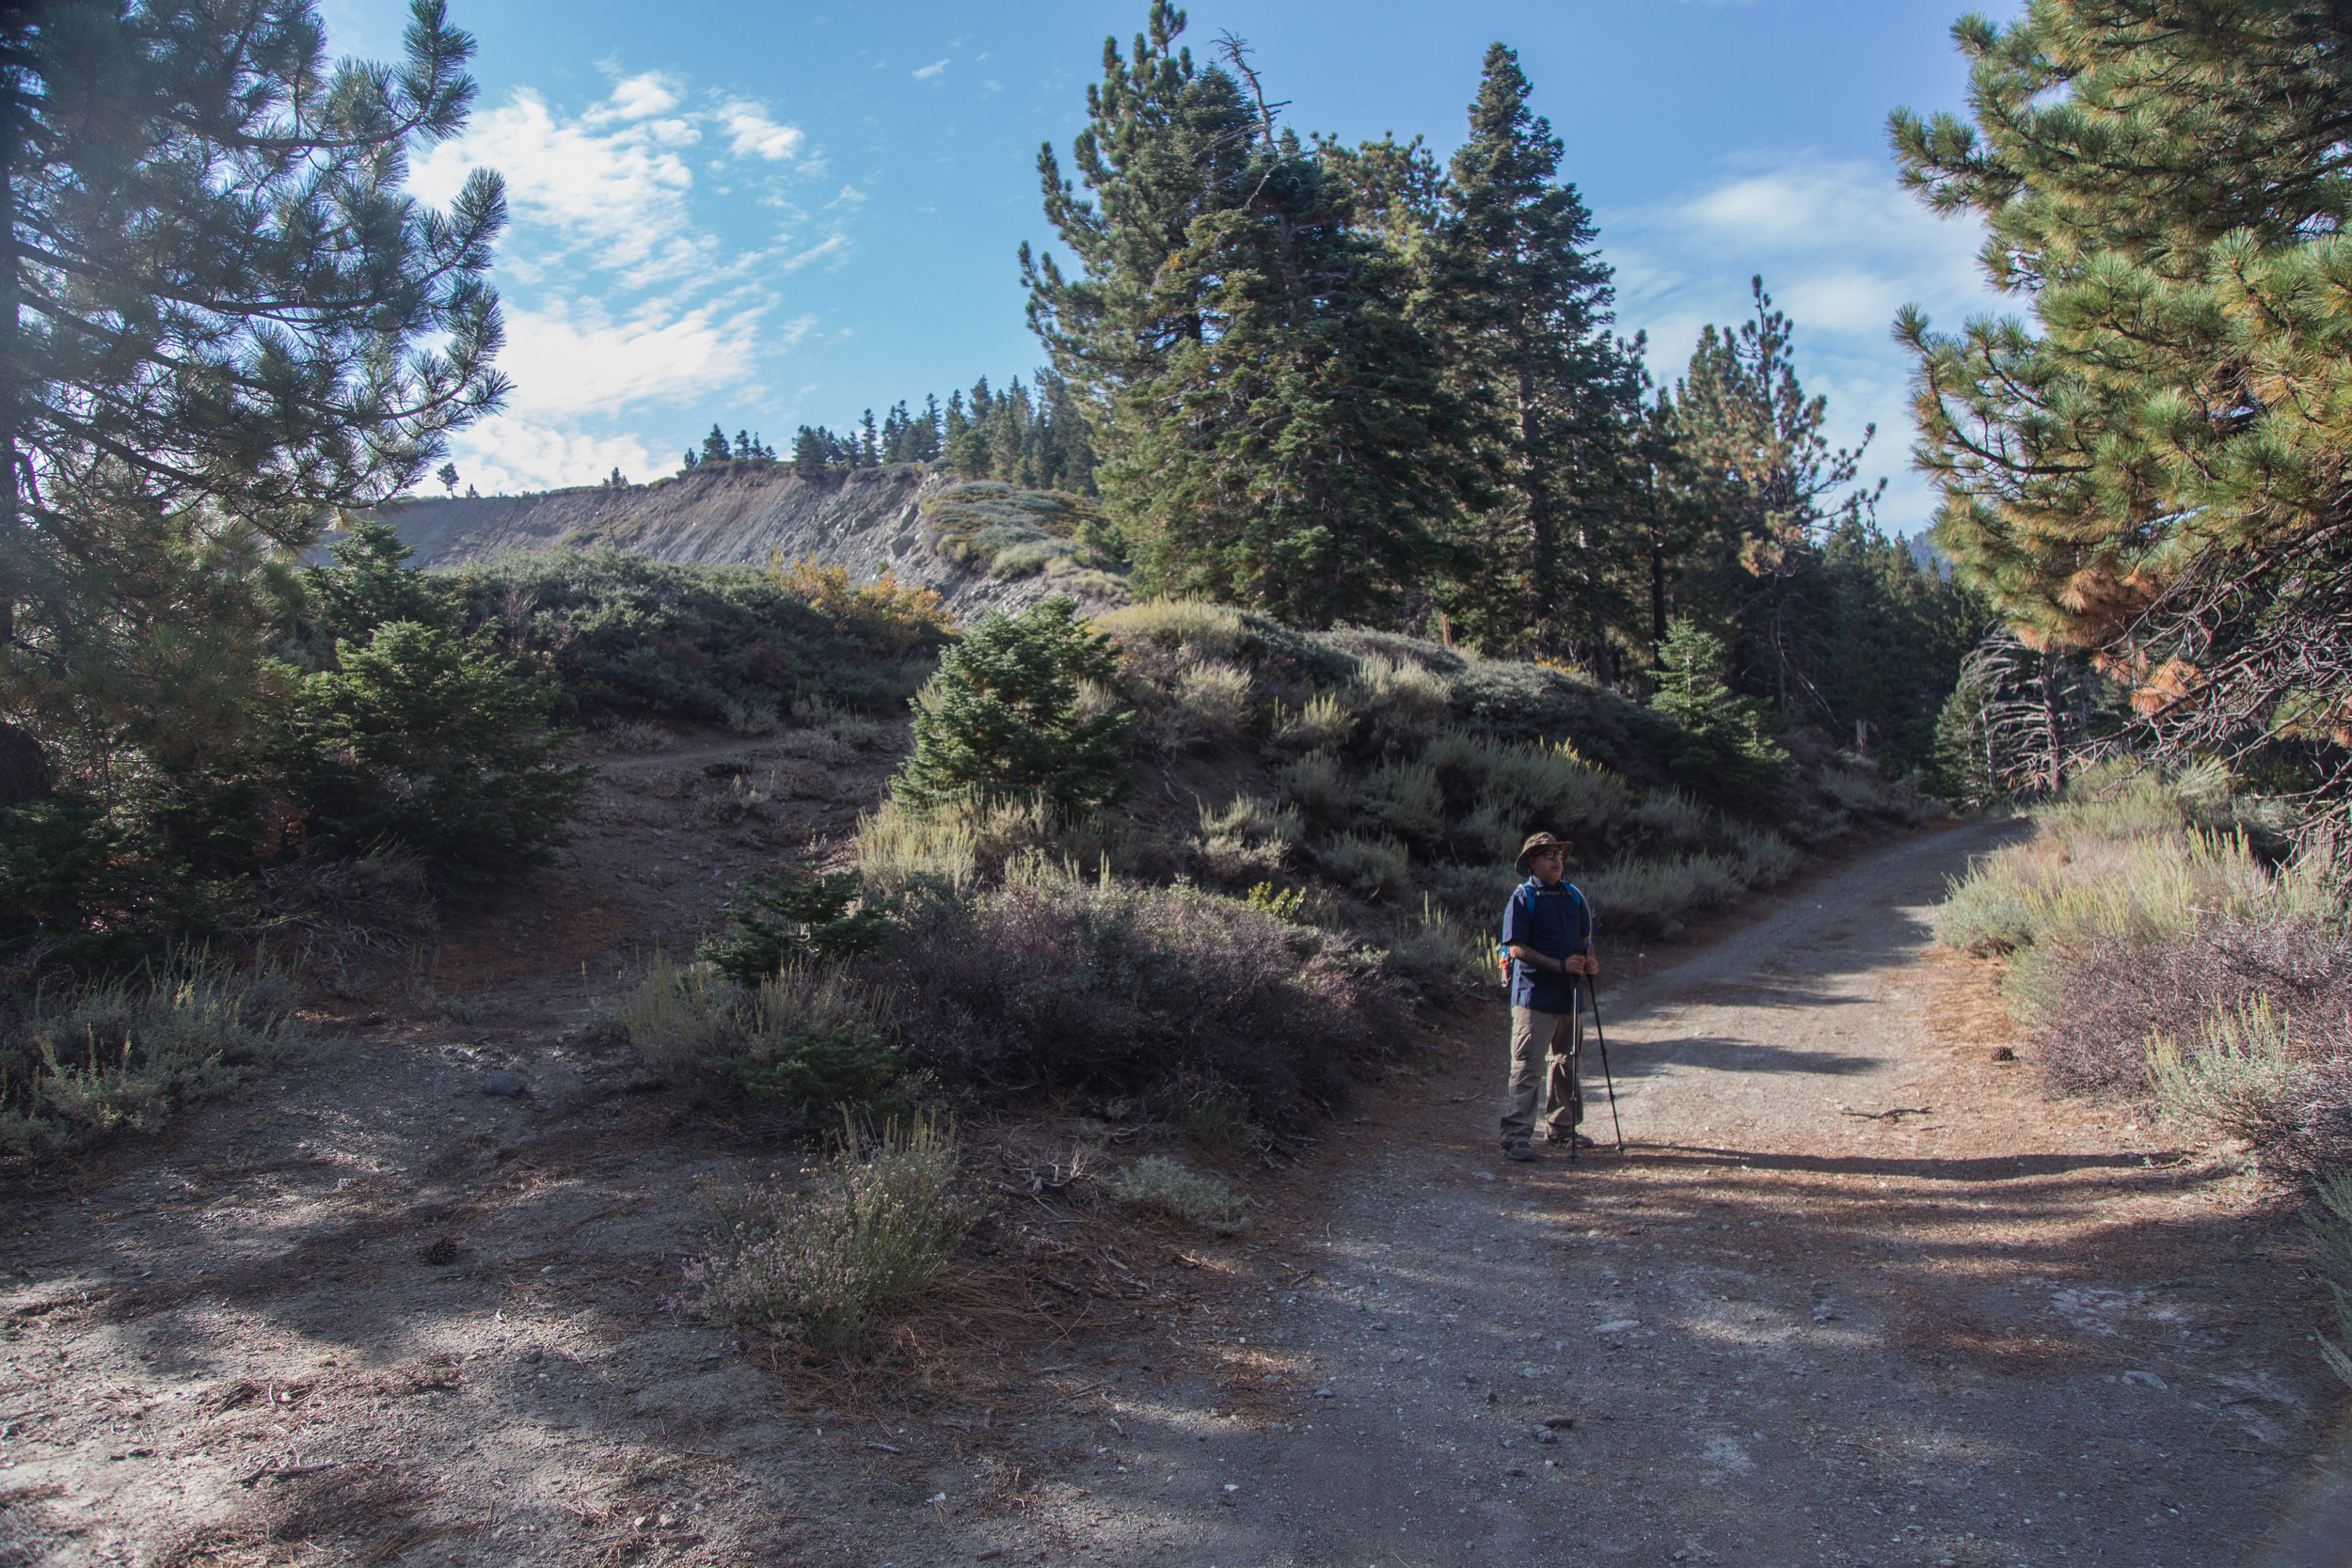 At about 1/4 mile, the PCT will intersect with the Blue Ridge Truck Trail. We hopped on the truck trail and according to my directions, we thought it would lead us to the summit.